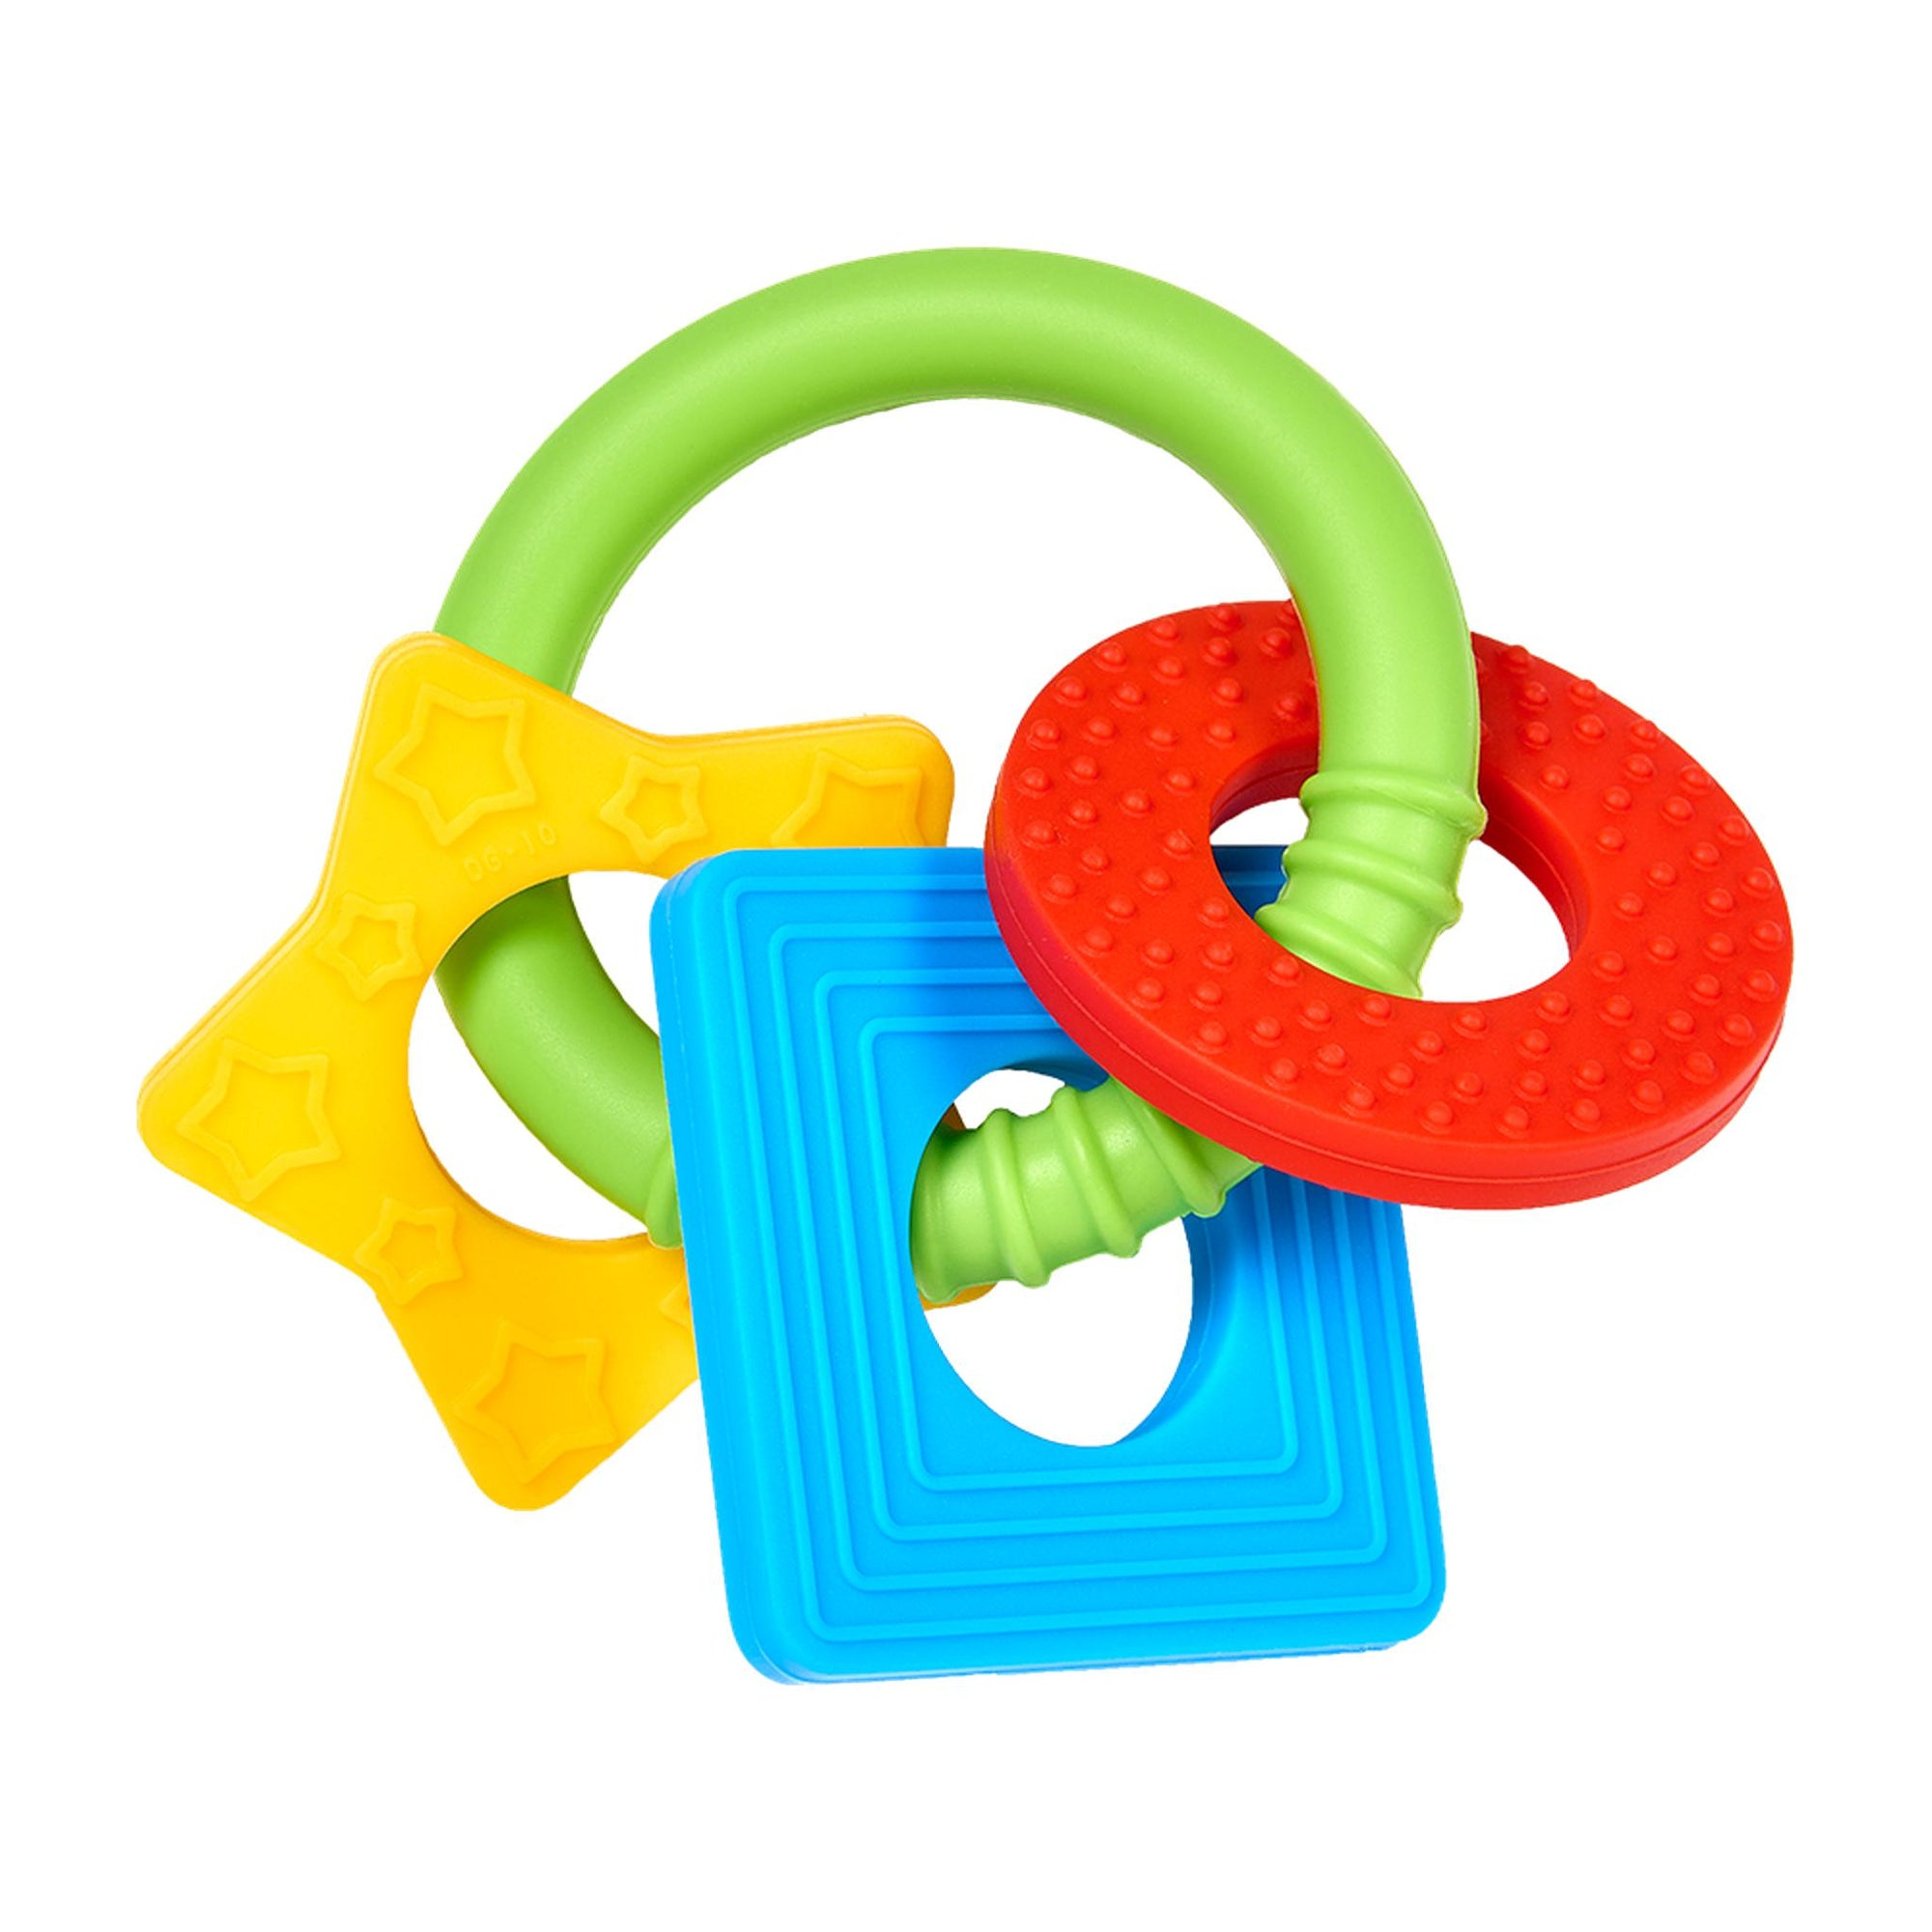 Dr. Brown's Learning Loop Teether-Teether-Mother and Baby Shop Kenya's #1 Online Baby Shop